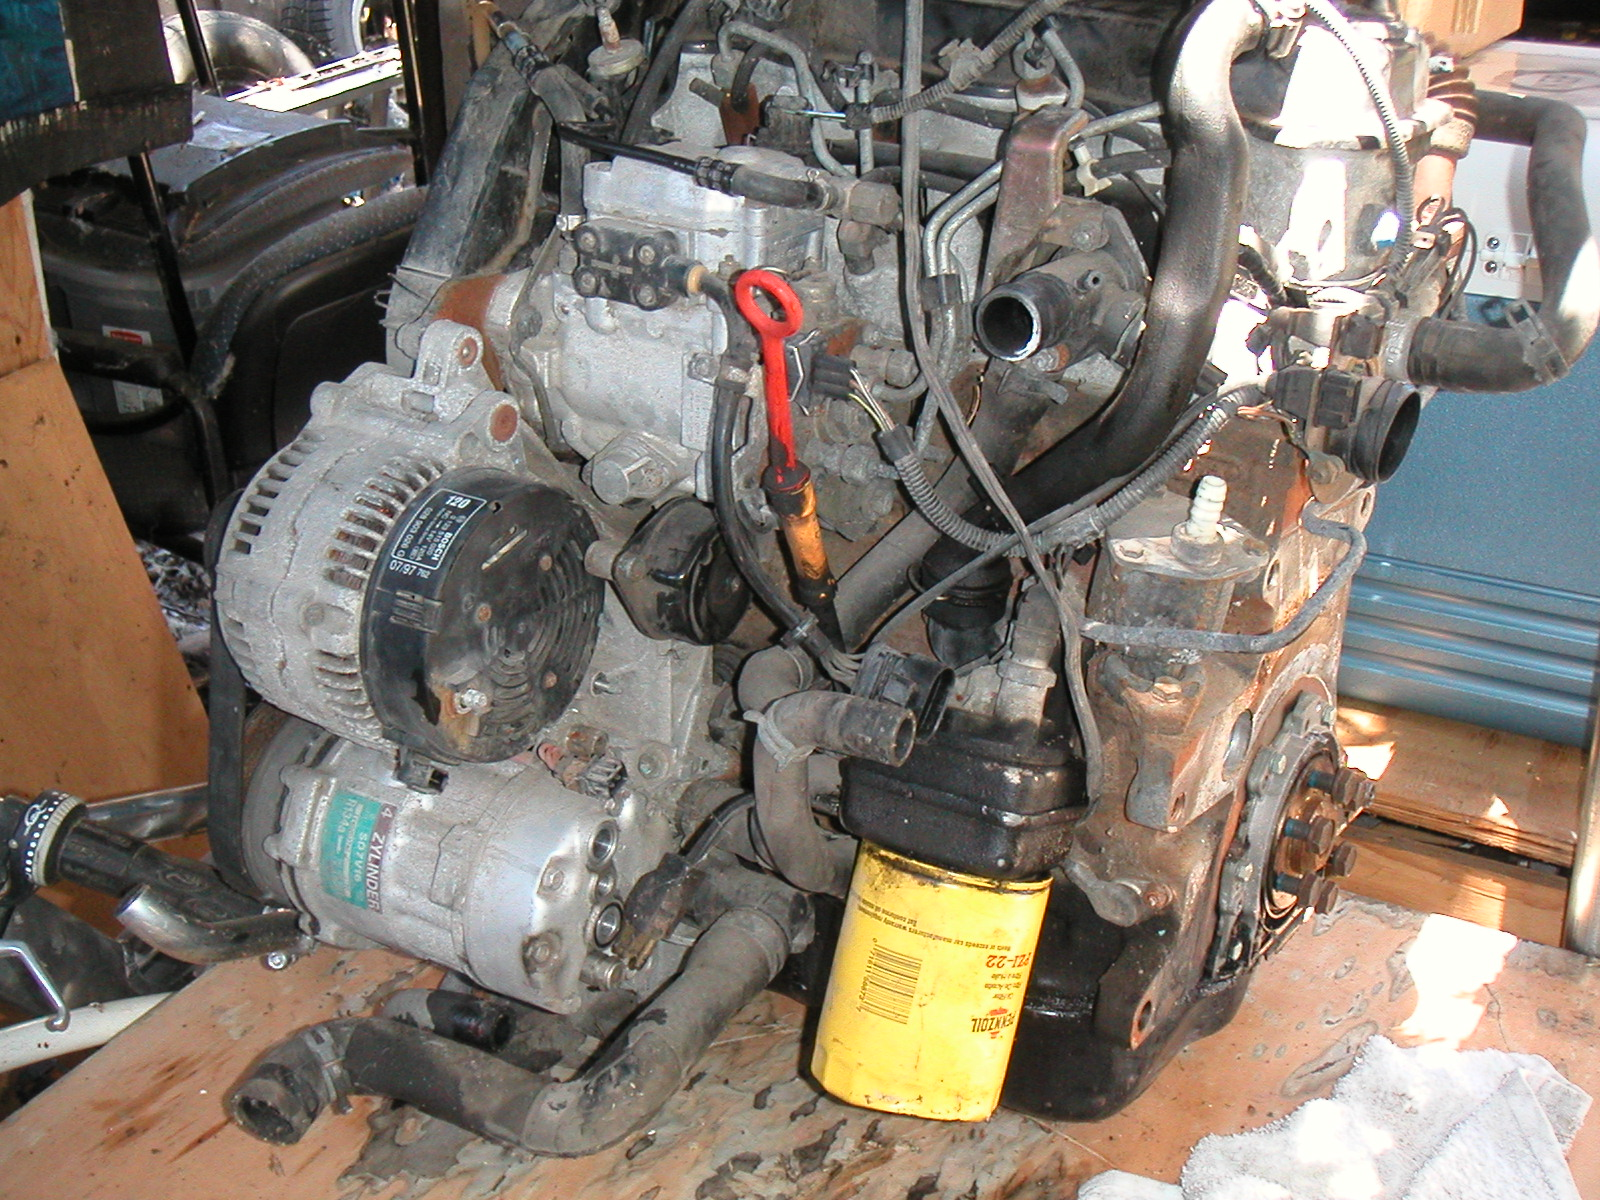 1999 Jetta Vr6 Engine Diagram Trusted Wiring Diagrams 2001 Volkswagen Auto Electrical U2022 Rh 6weeks Co Uk Vw 20